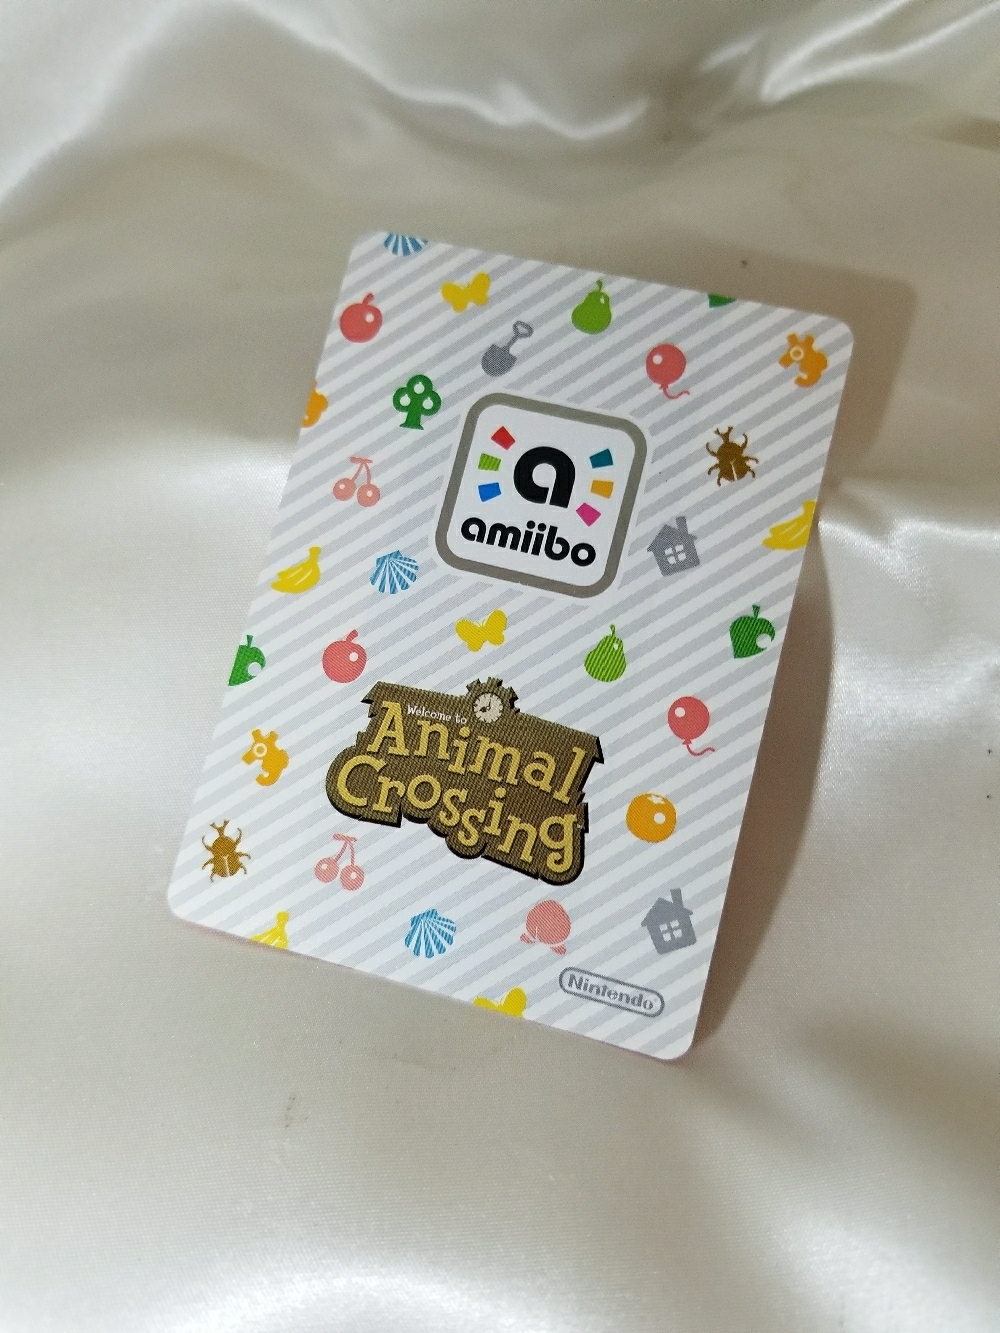 Animal crossing sanrio collaboration pack amiibo cards. 039 - Jitters - Series 1 Animal Crossing Villager Amiibo Card - Other